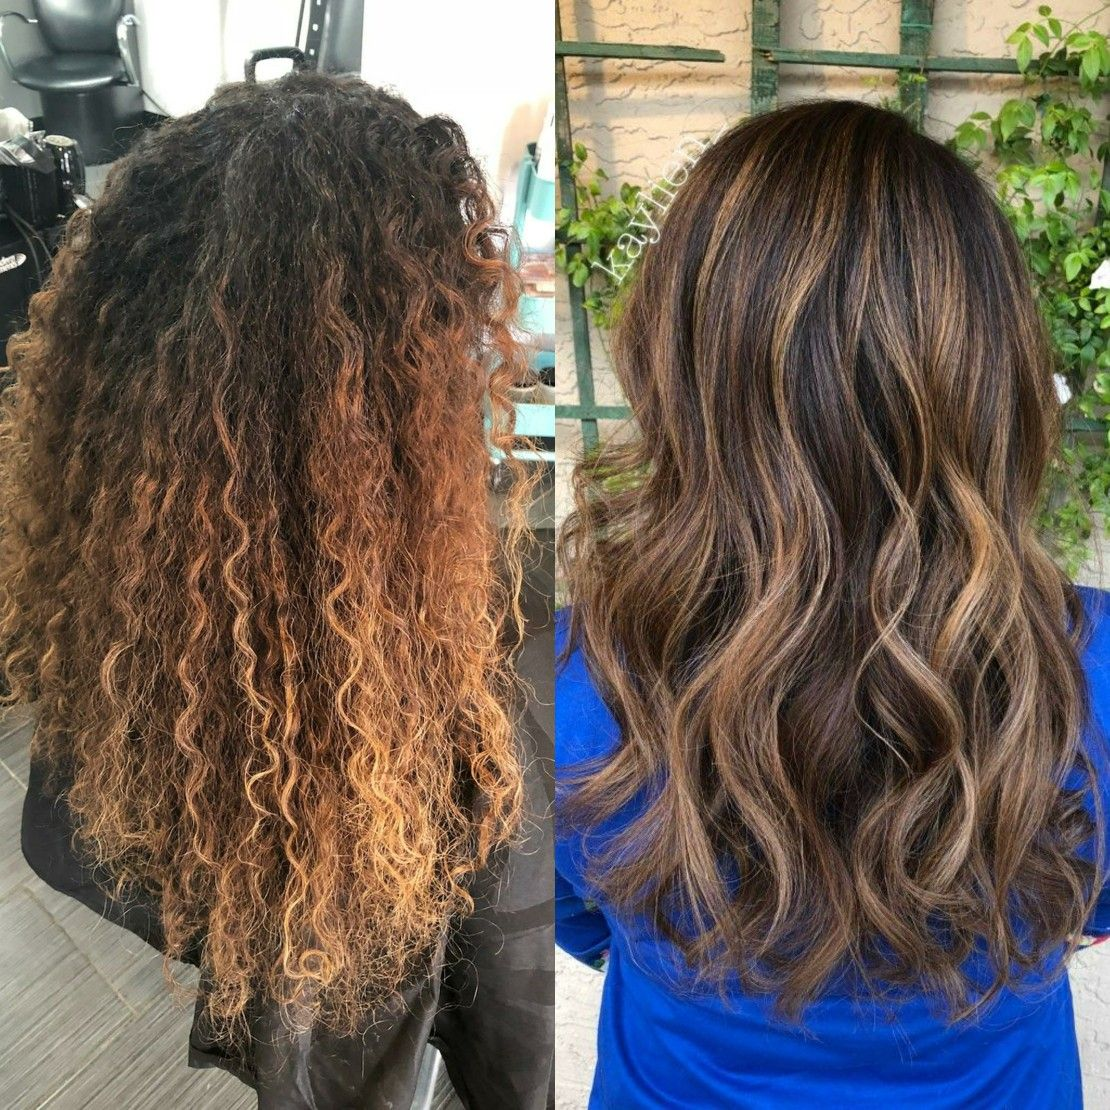 Before And After Woth Curly Hair And Bayalage Caramel And Highlights Hair Beauty Hair Hair Styles